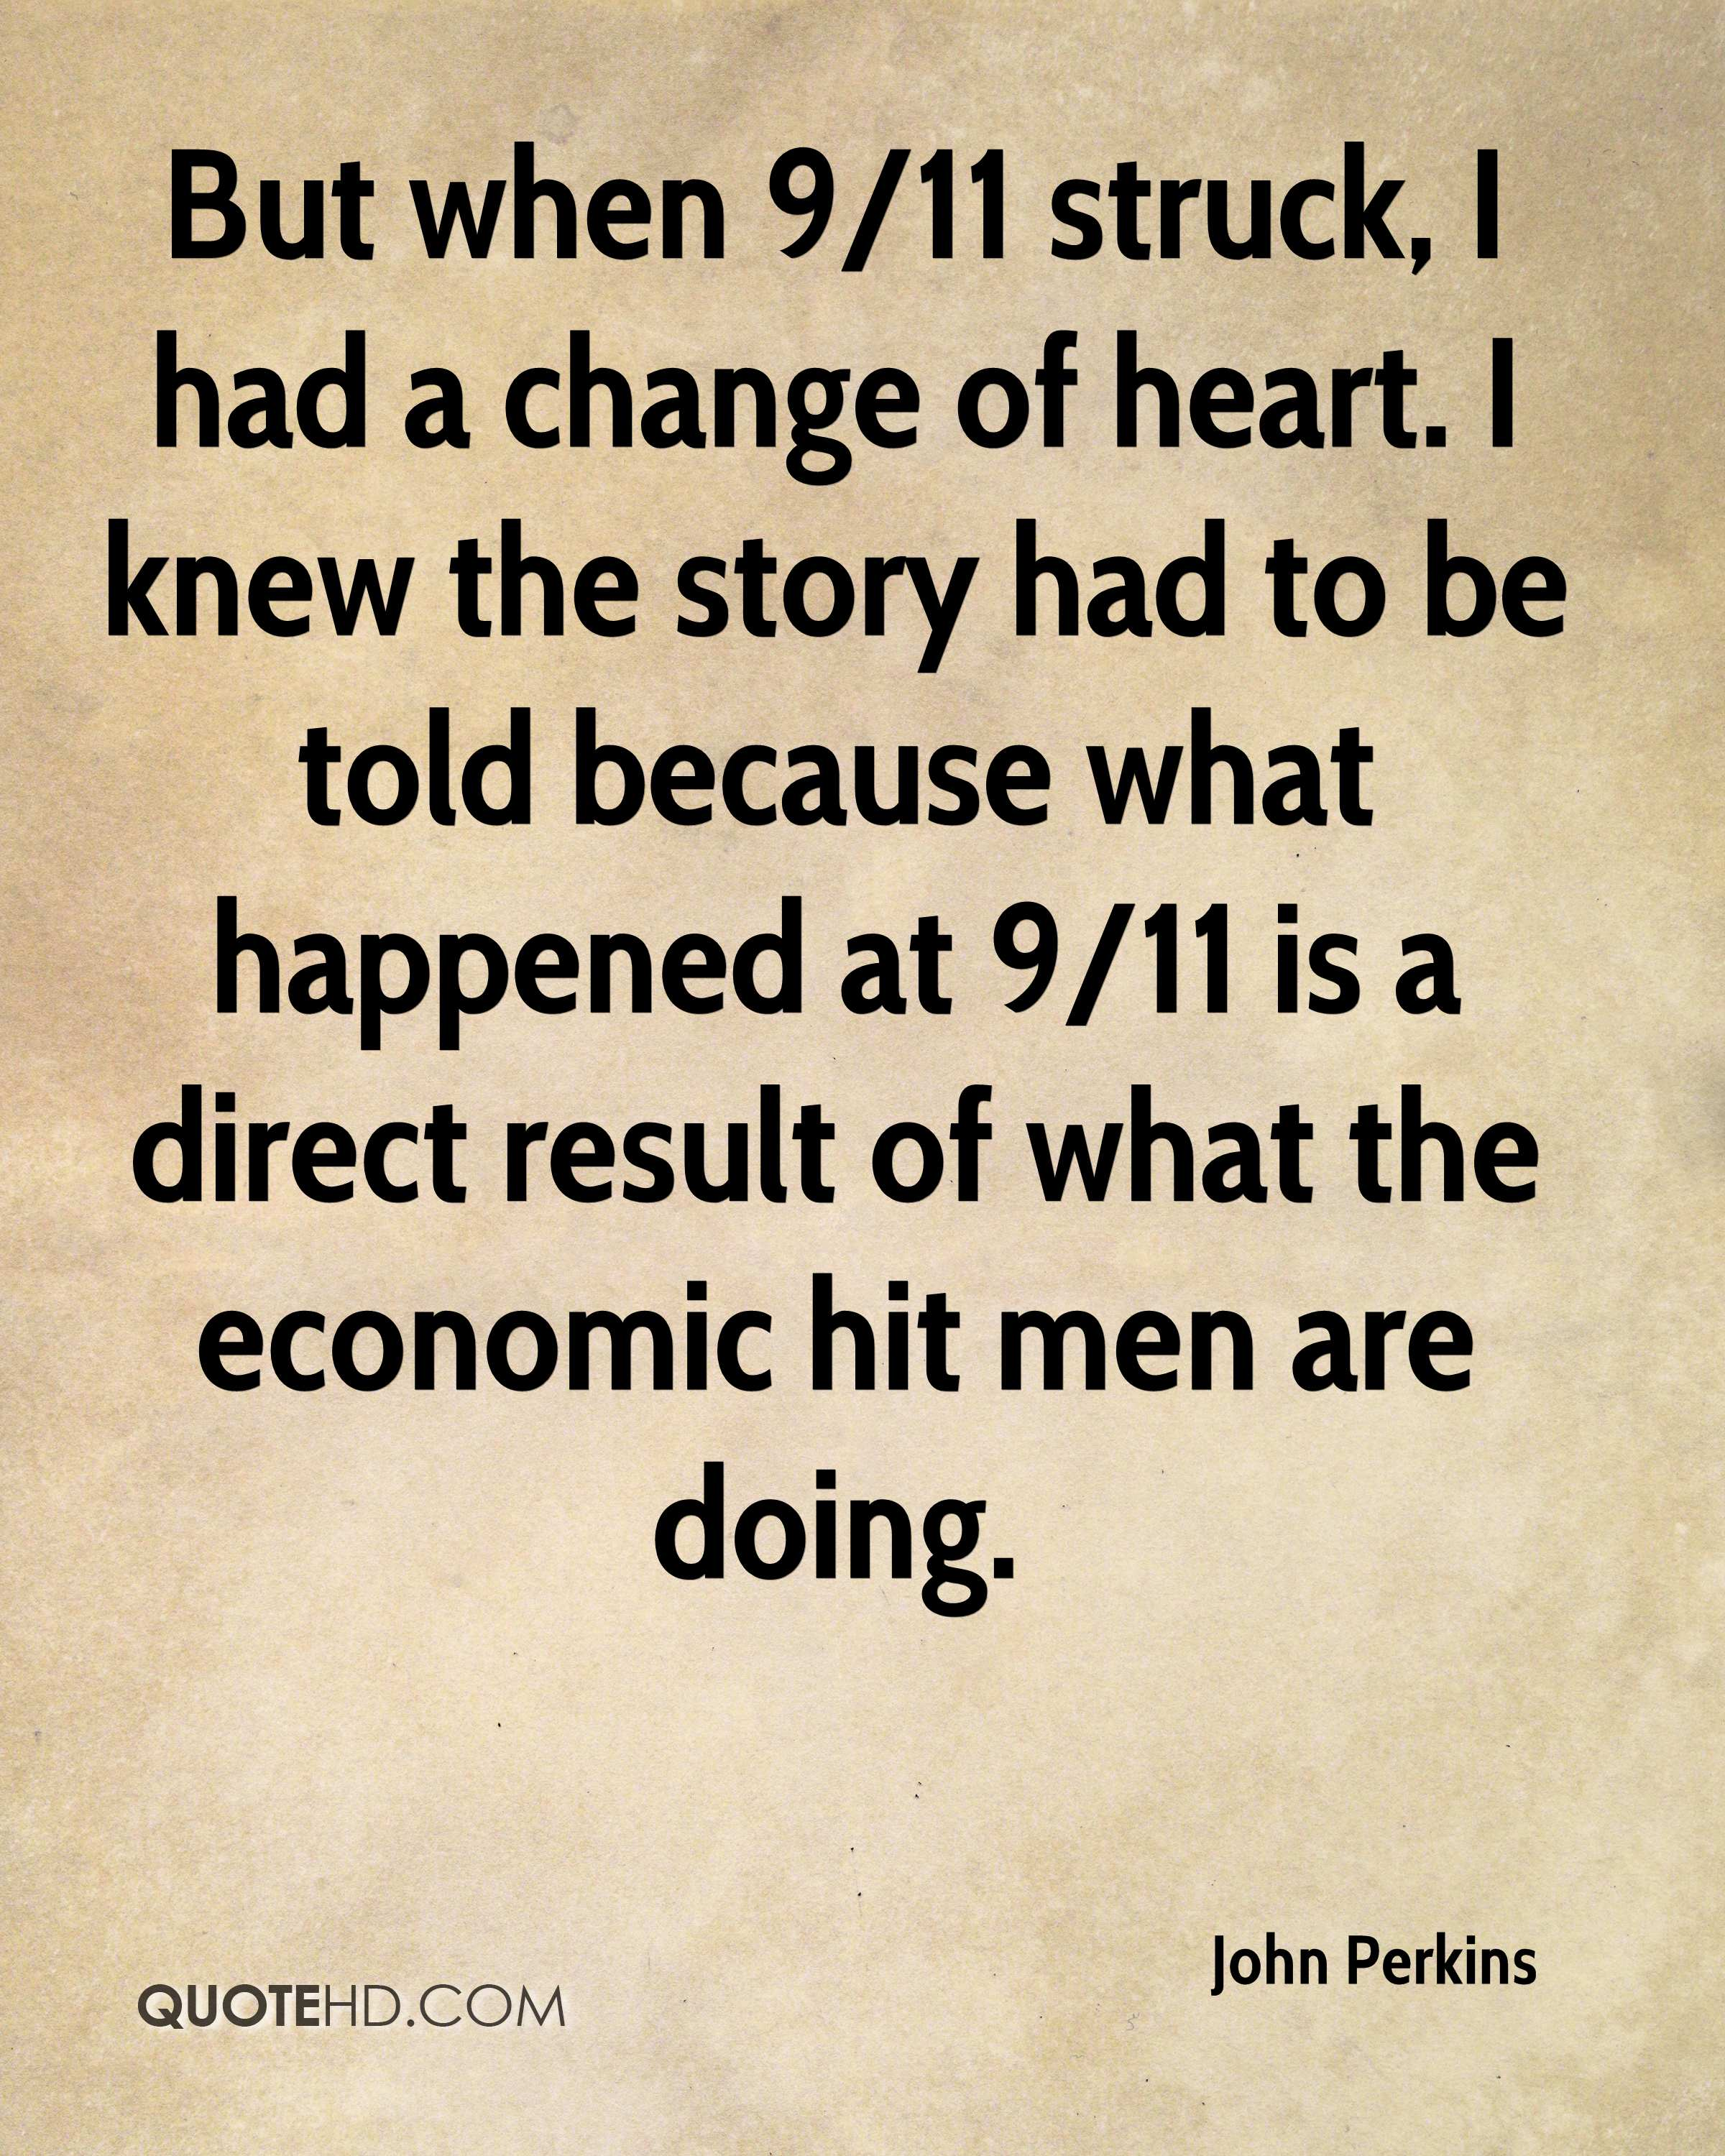 But when 9/11 struck, I had a change of heart. I knew the story had to be told because what happened at 9/11 is a direct result of what the economic hit men are doing.